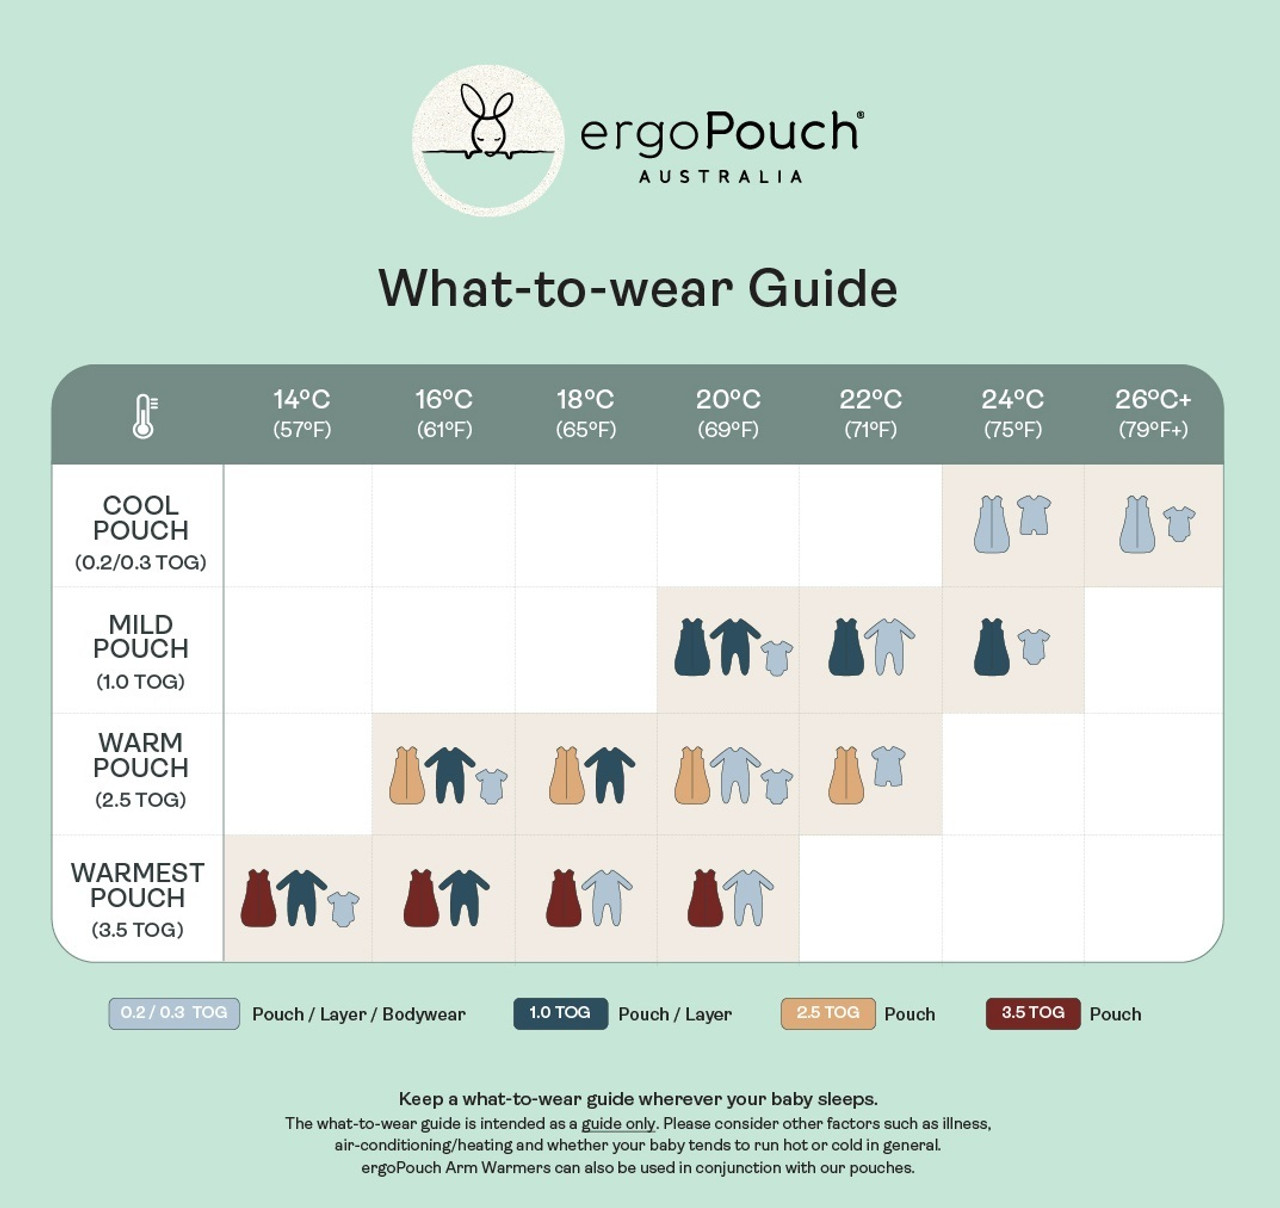 Ergopouch Cocoon Swaddle Bag 2.5 tog at Baby Barn Discounts